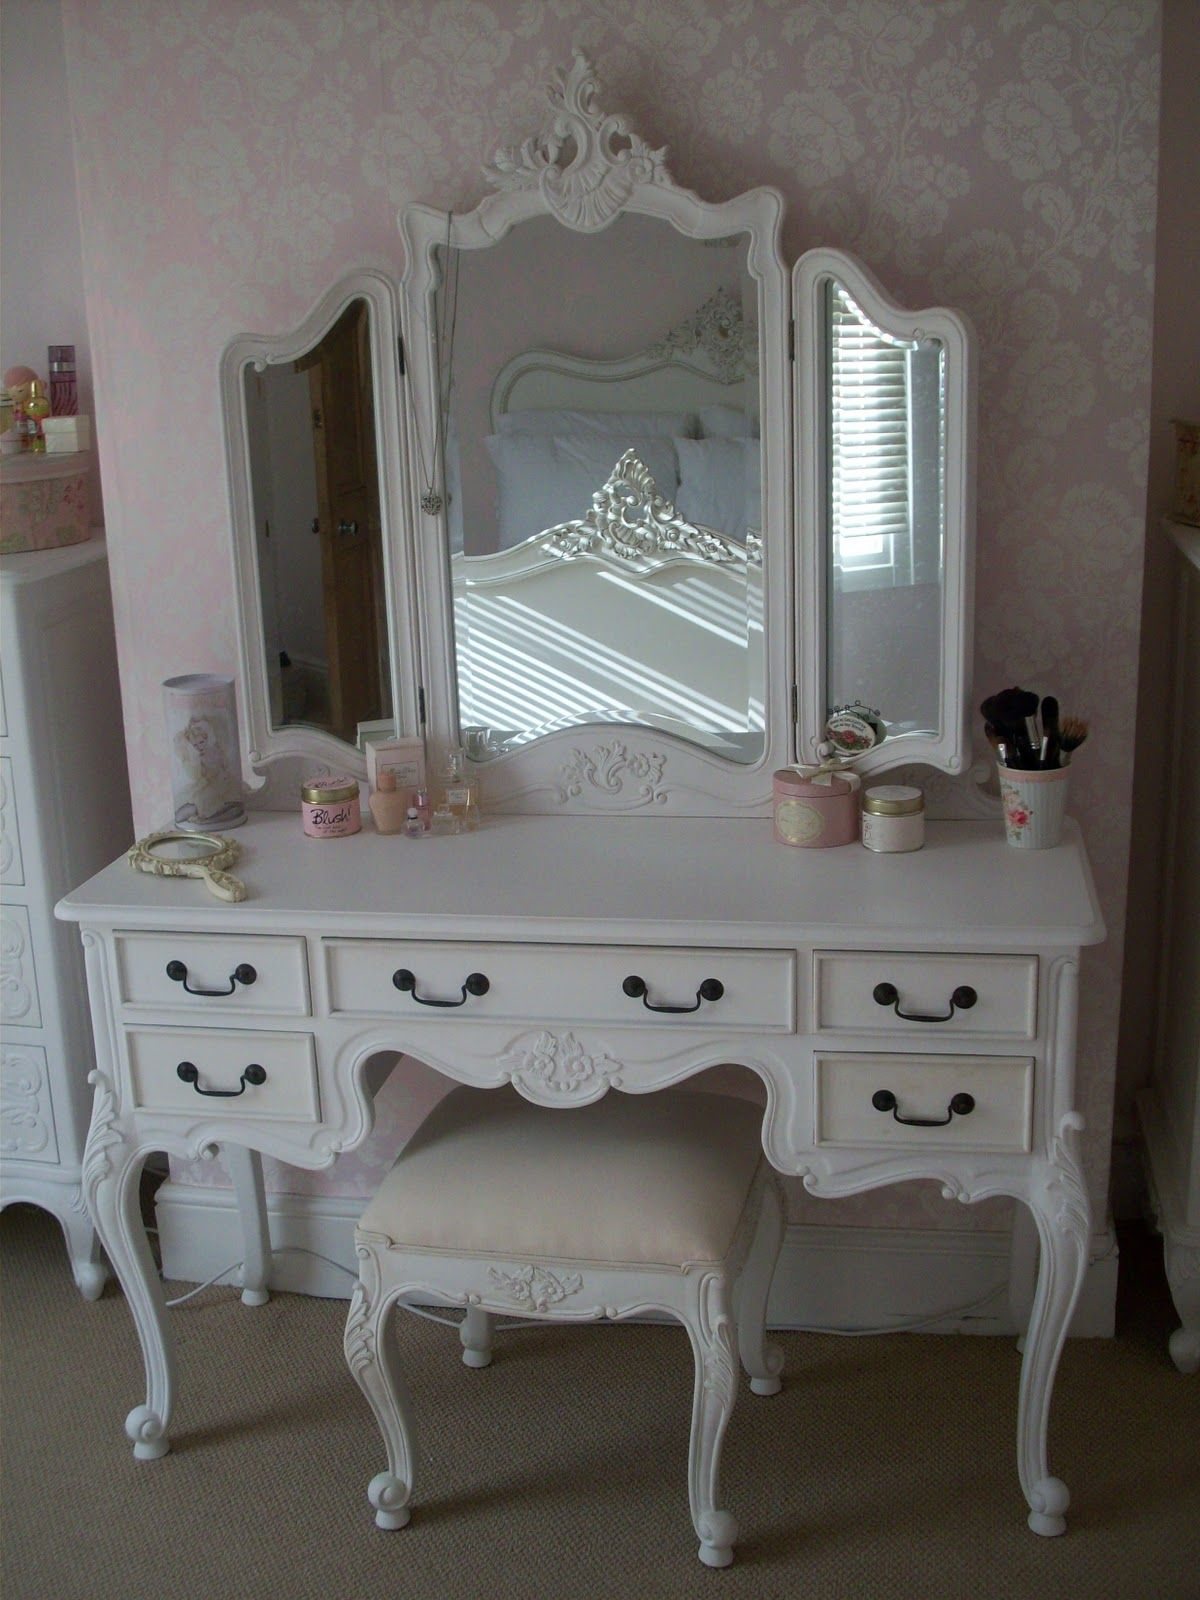 Amazing White Wooden Tri Fold Dresser Vanity Makeup Table